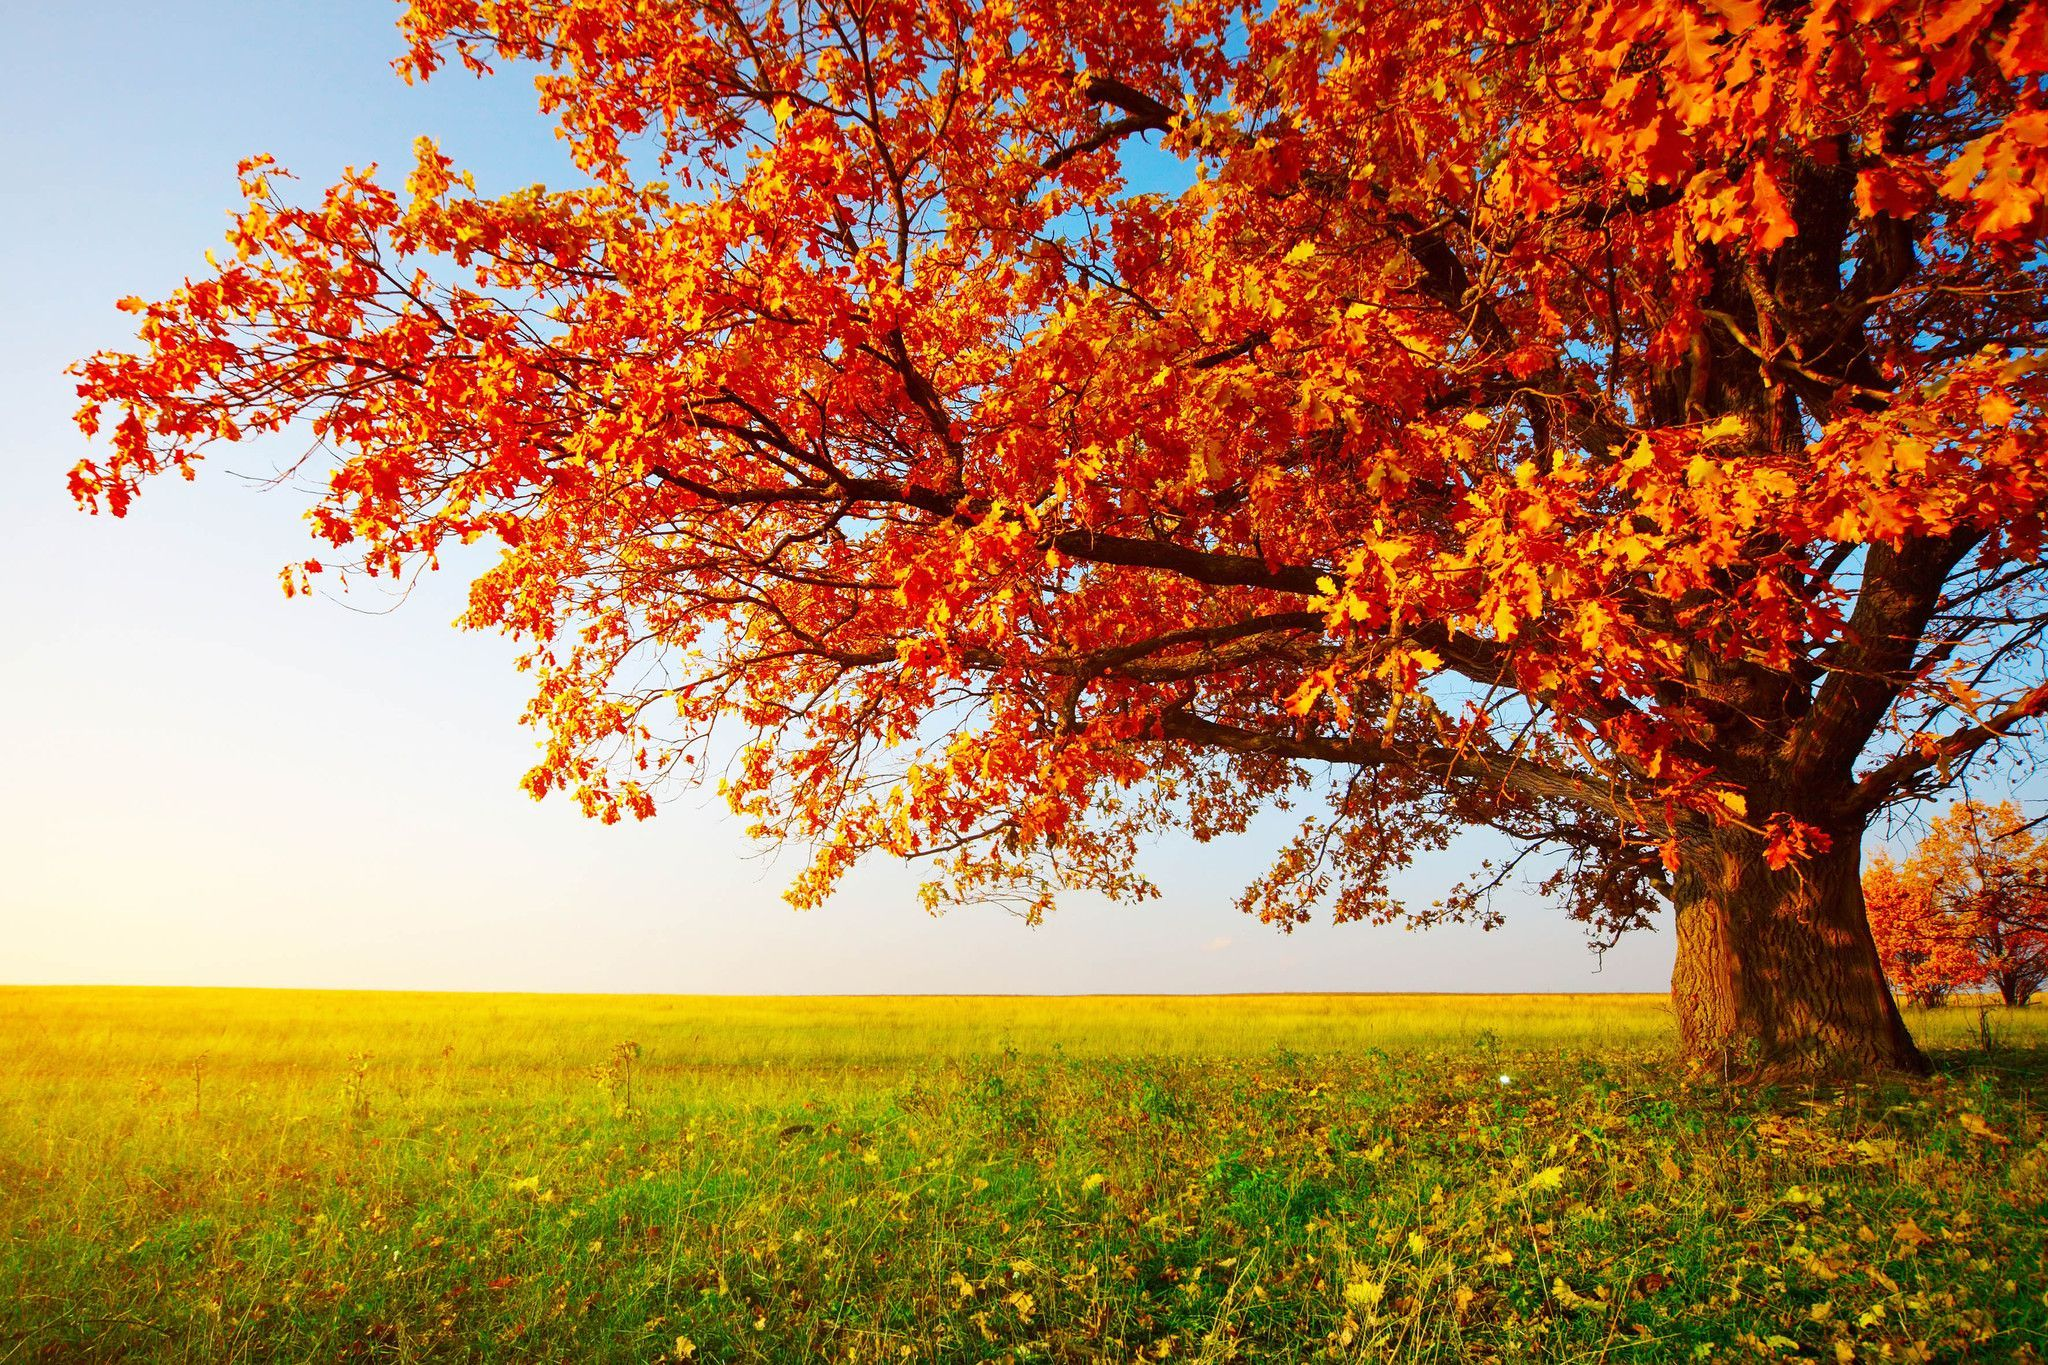 A Day In The Field Large Nature Landscape Canvas Photography Print Scenery Wallpaper Beautiful Scenery Wallpaper Autumn Trees